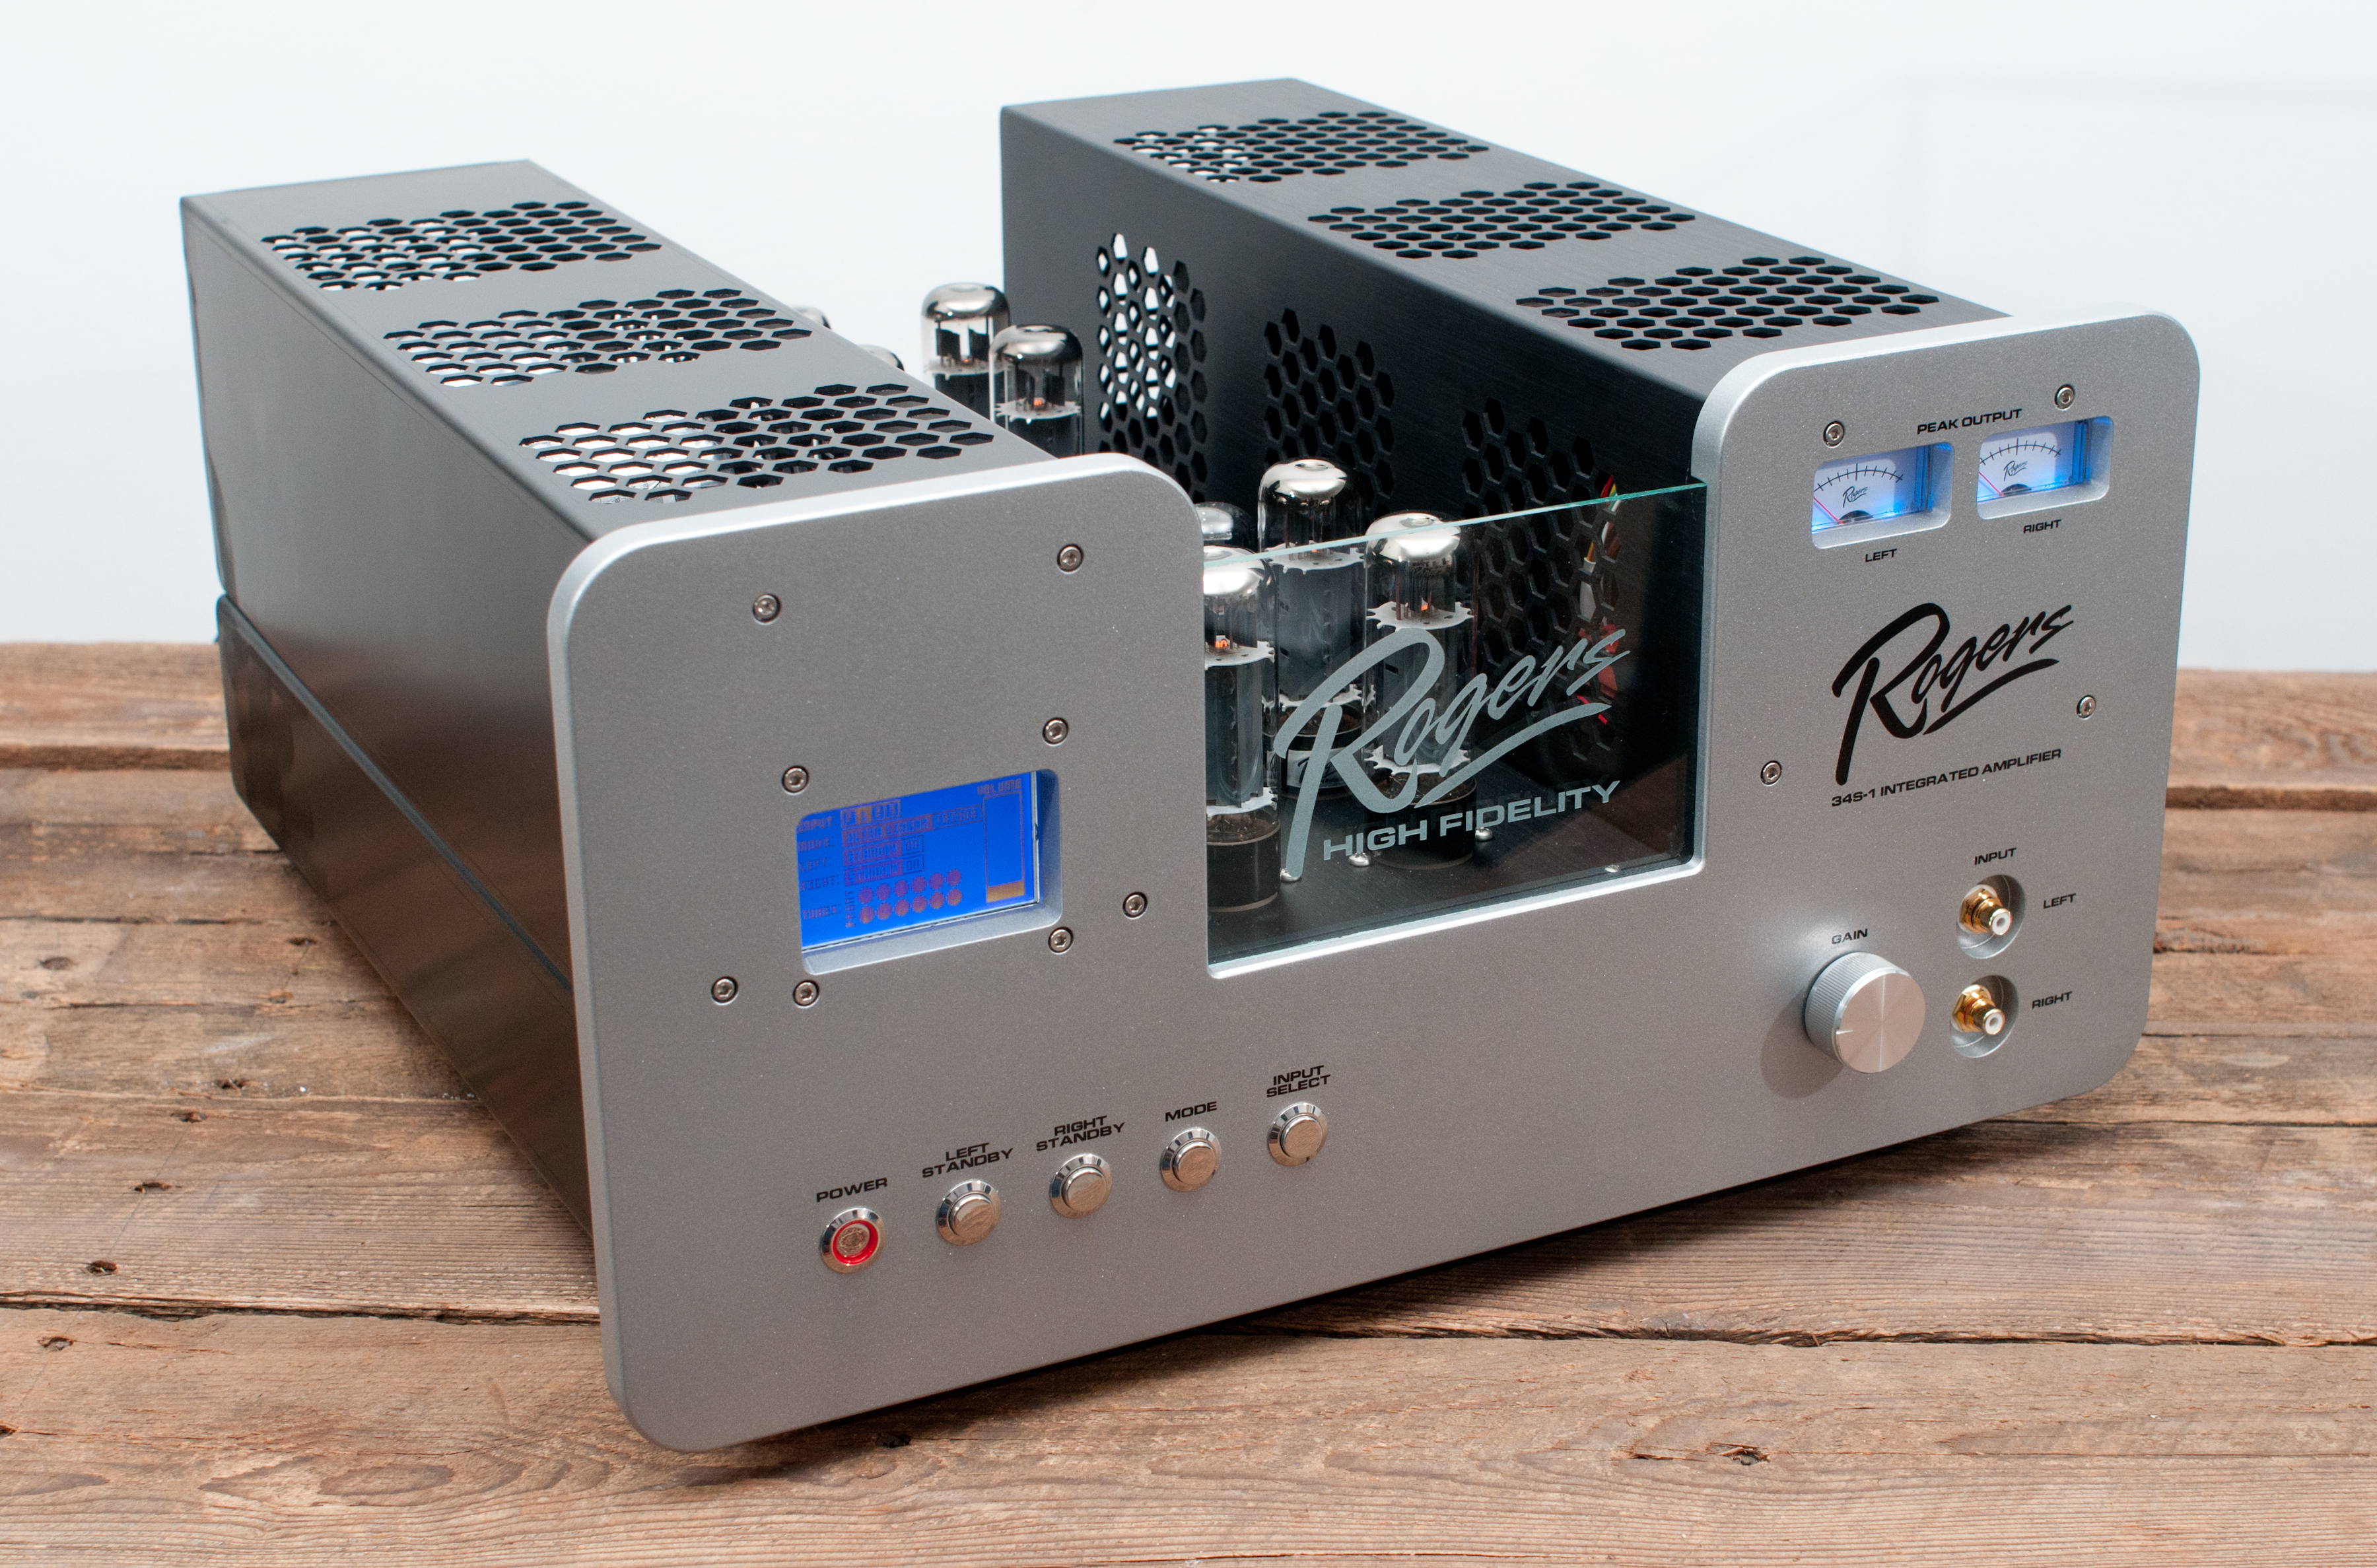 Rogers 34s 1 Integrated Amplifier Rogershighfidelity Adresses Of Circuits Power Audio Amplifiers Manufacturers Manufacturing Process All Are Built Using Our Own Statistical Control Processes That Yield Better Than A 998 First Pass